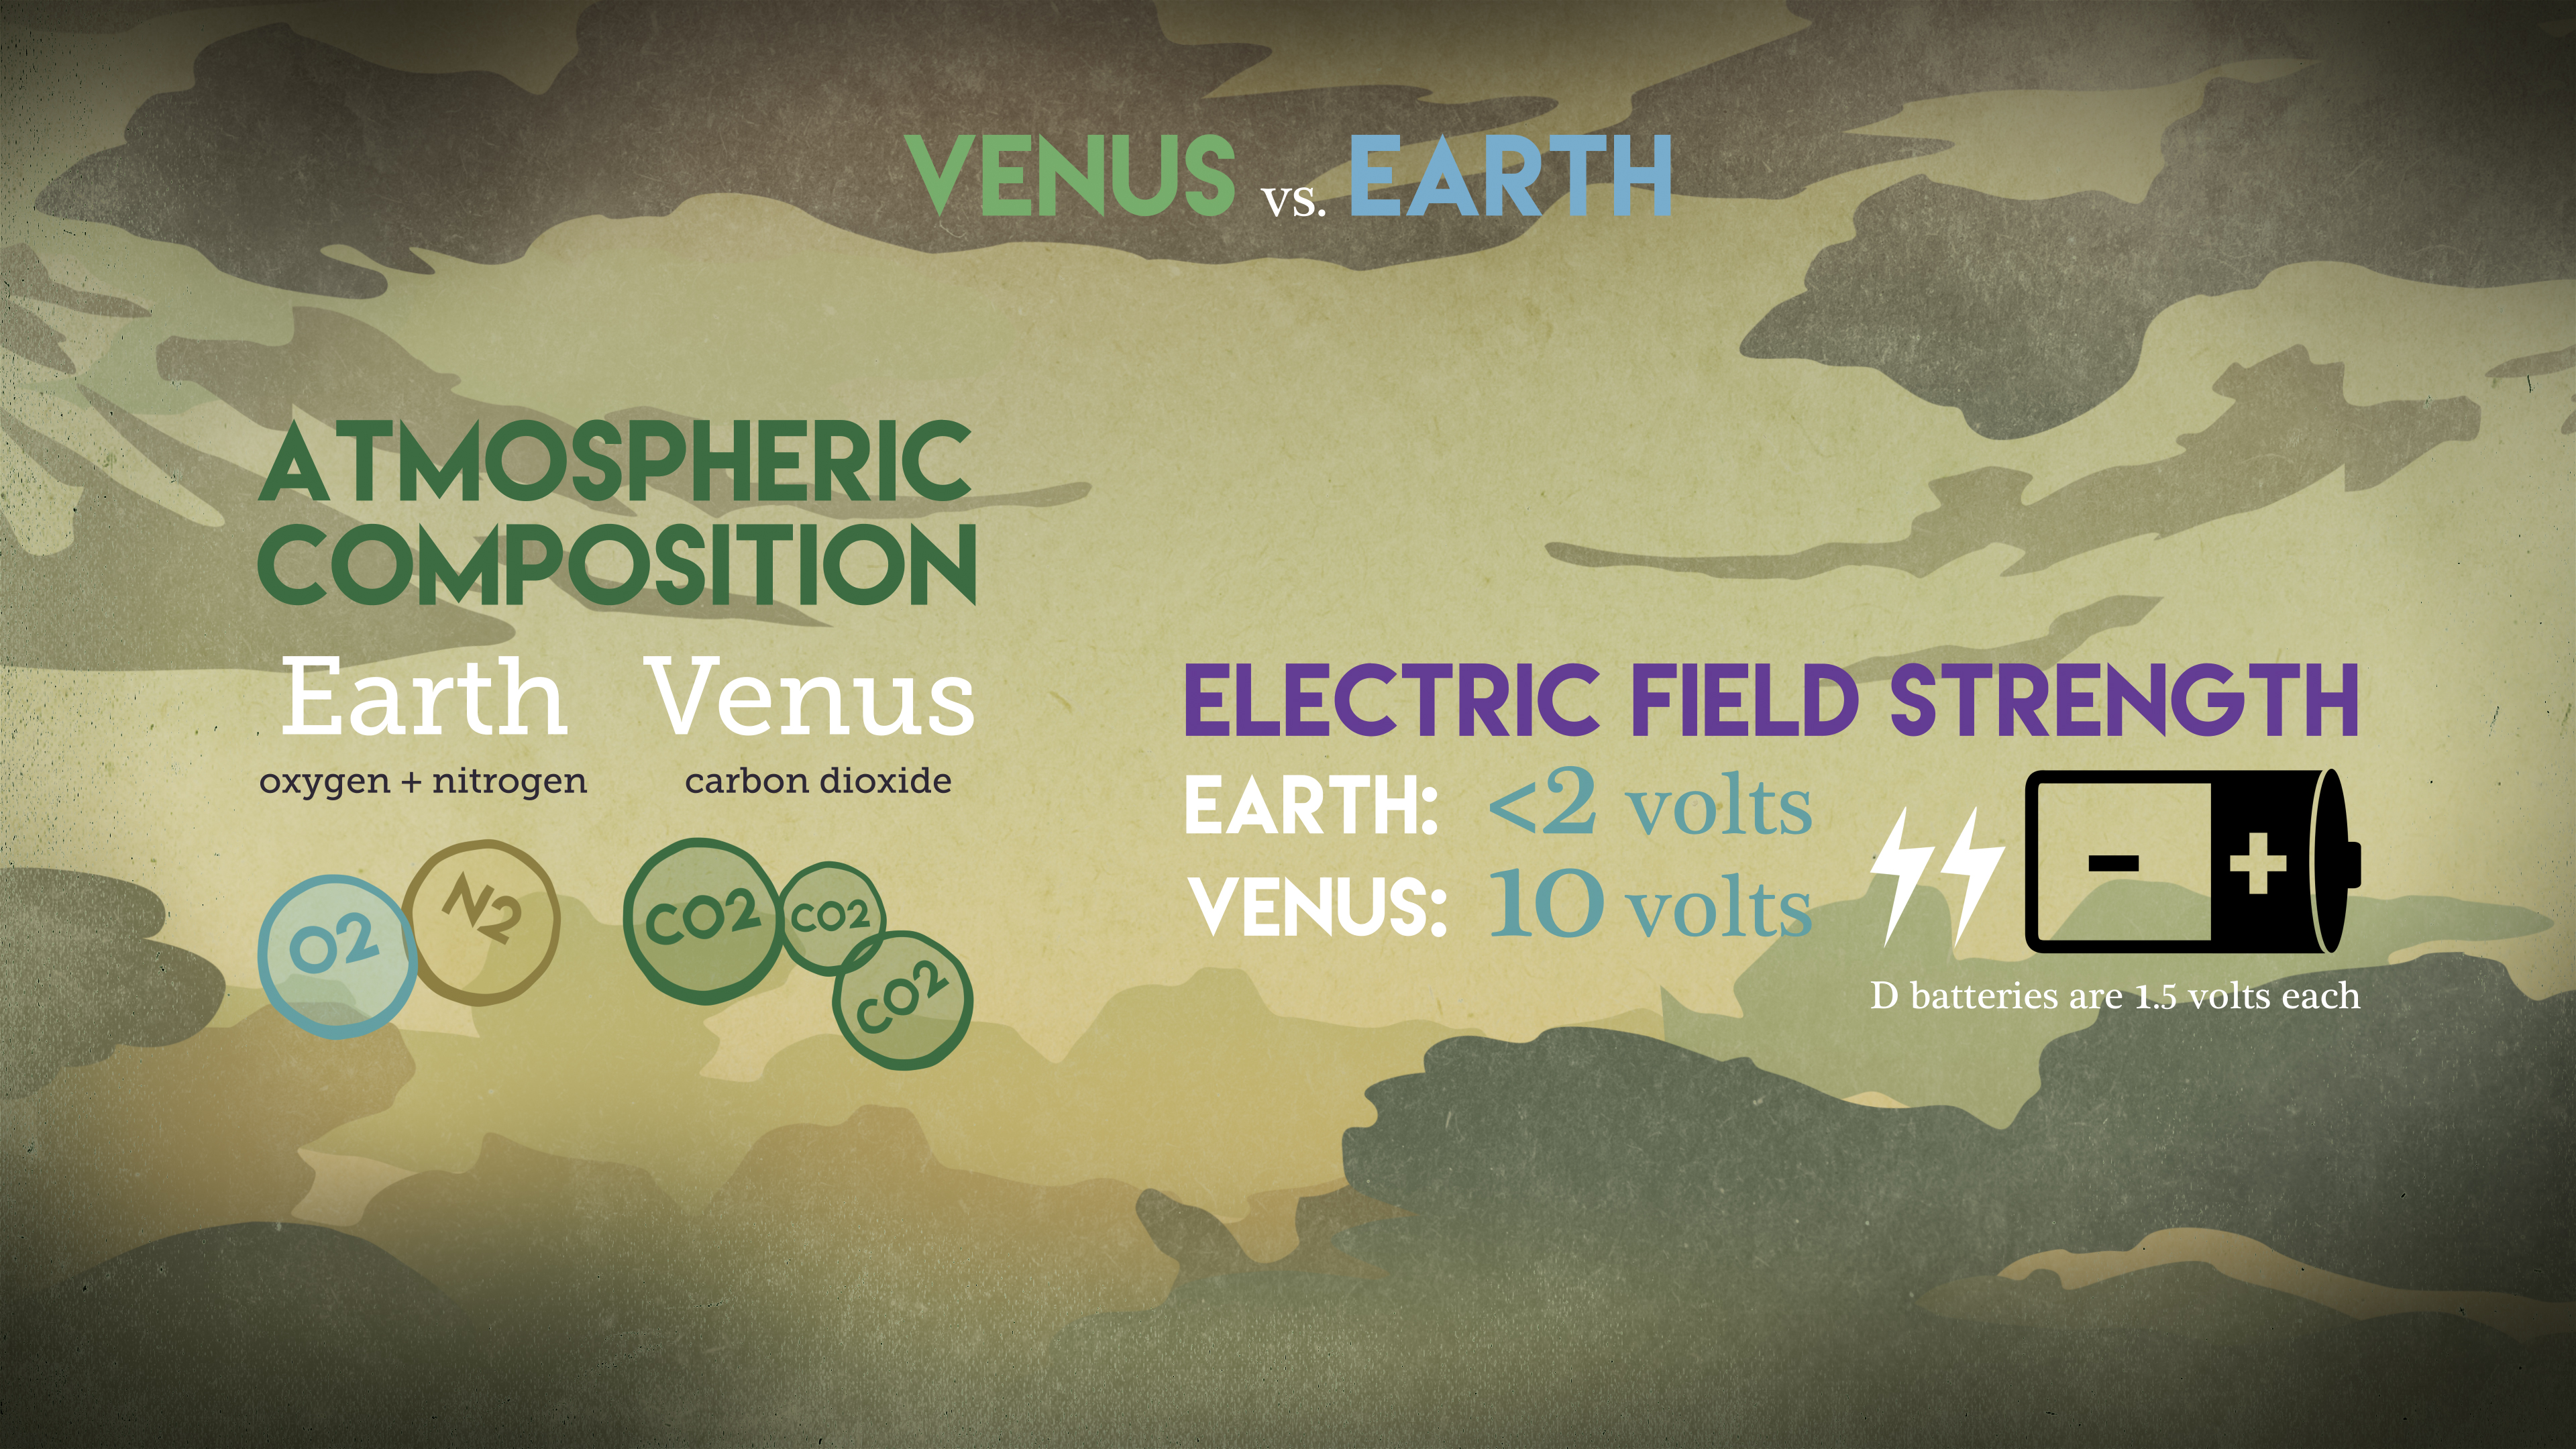 Electric design turns 22 - This Graphic Compares The Atmospheric Composition And Electric Field Strength On Earth And Venus